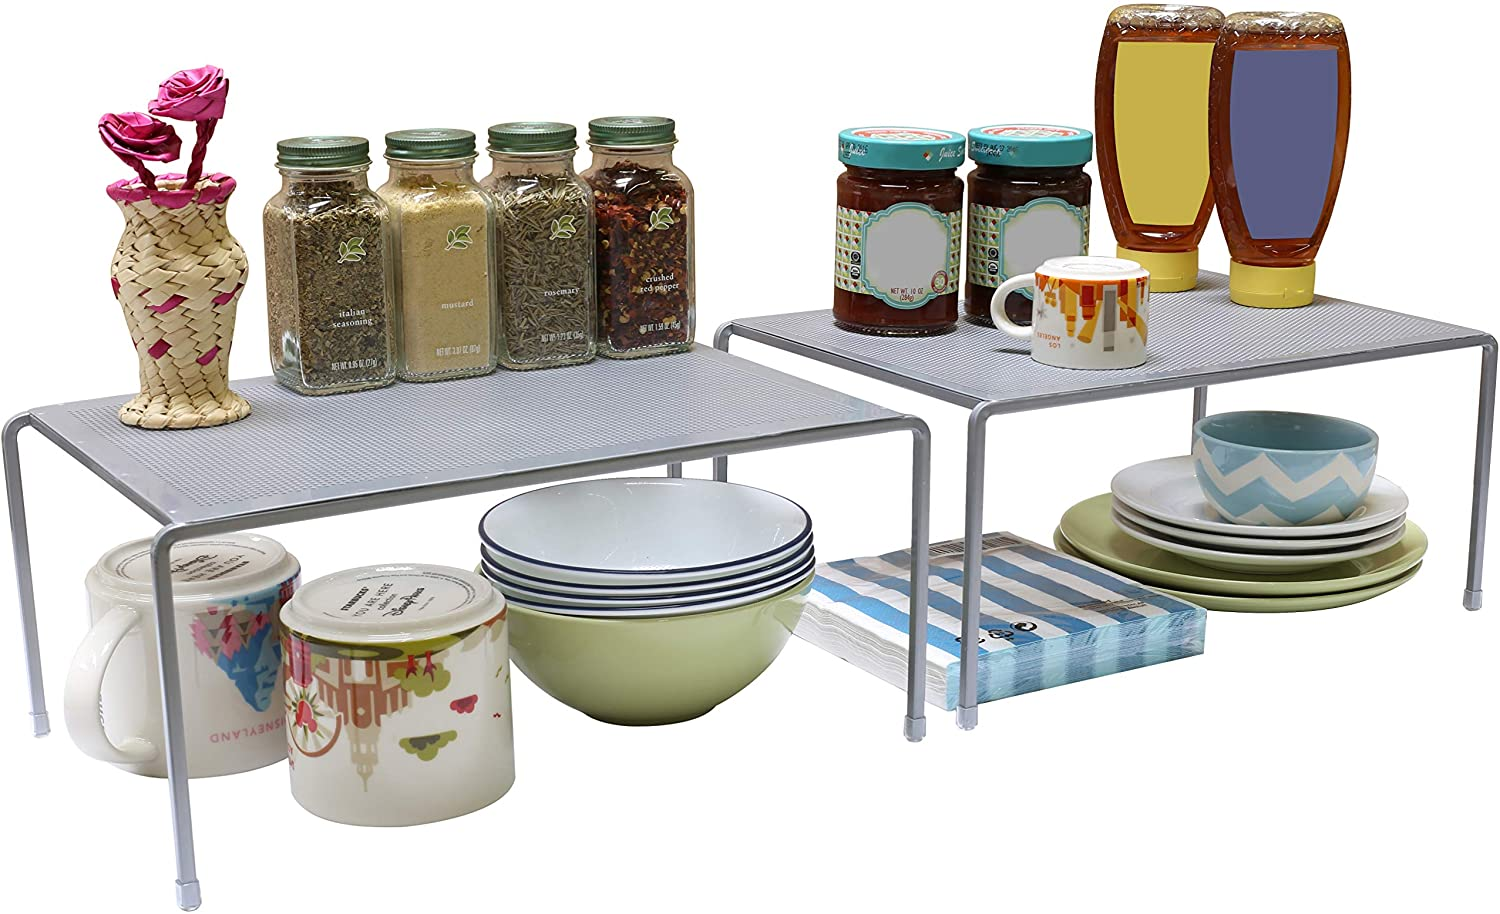 Stackable kitchen organizer with random things